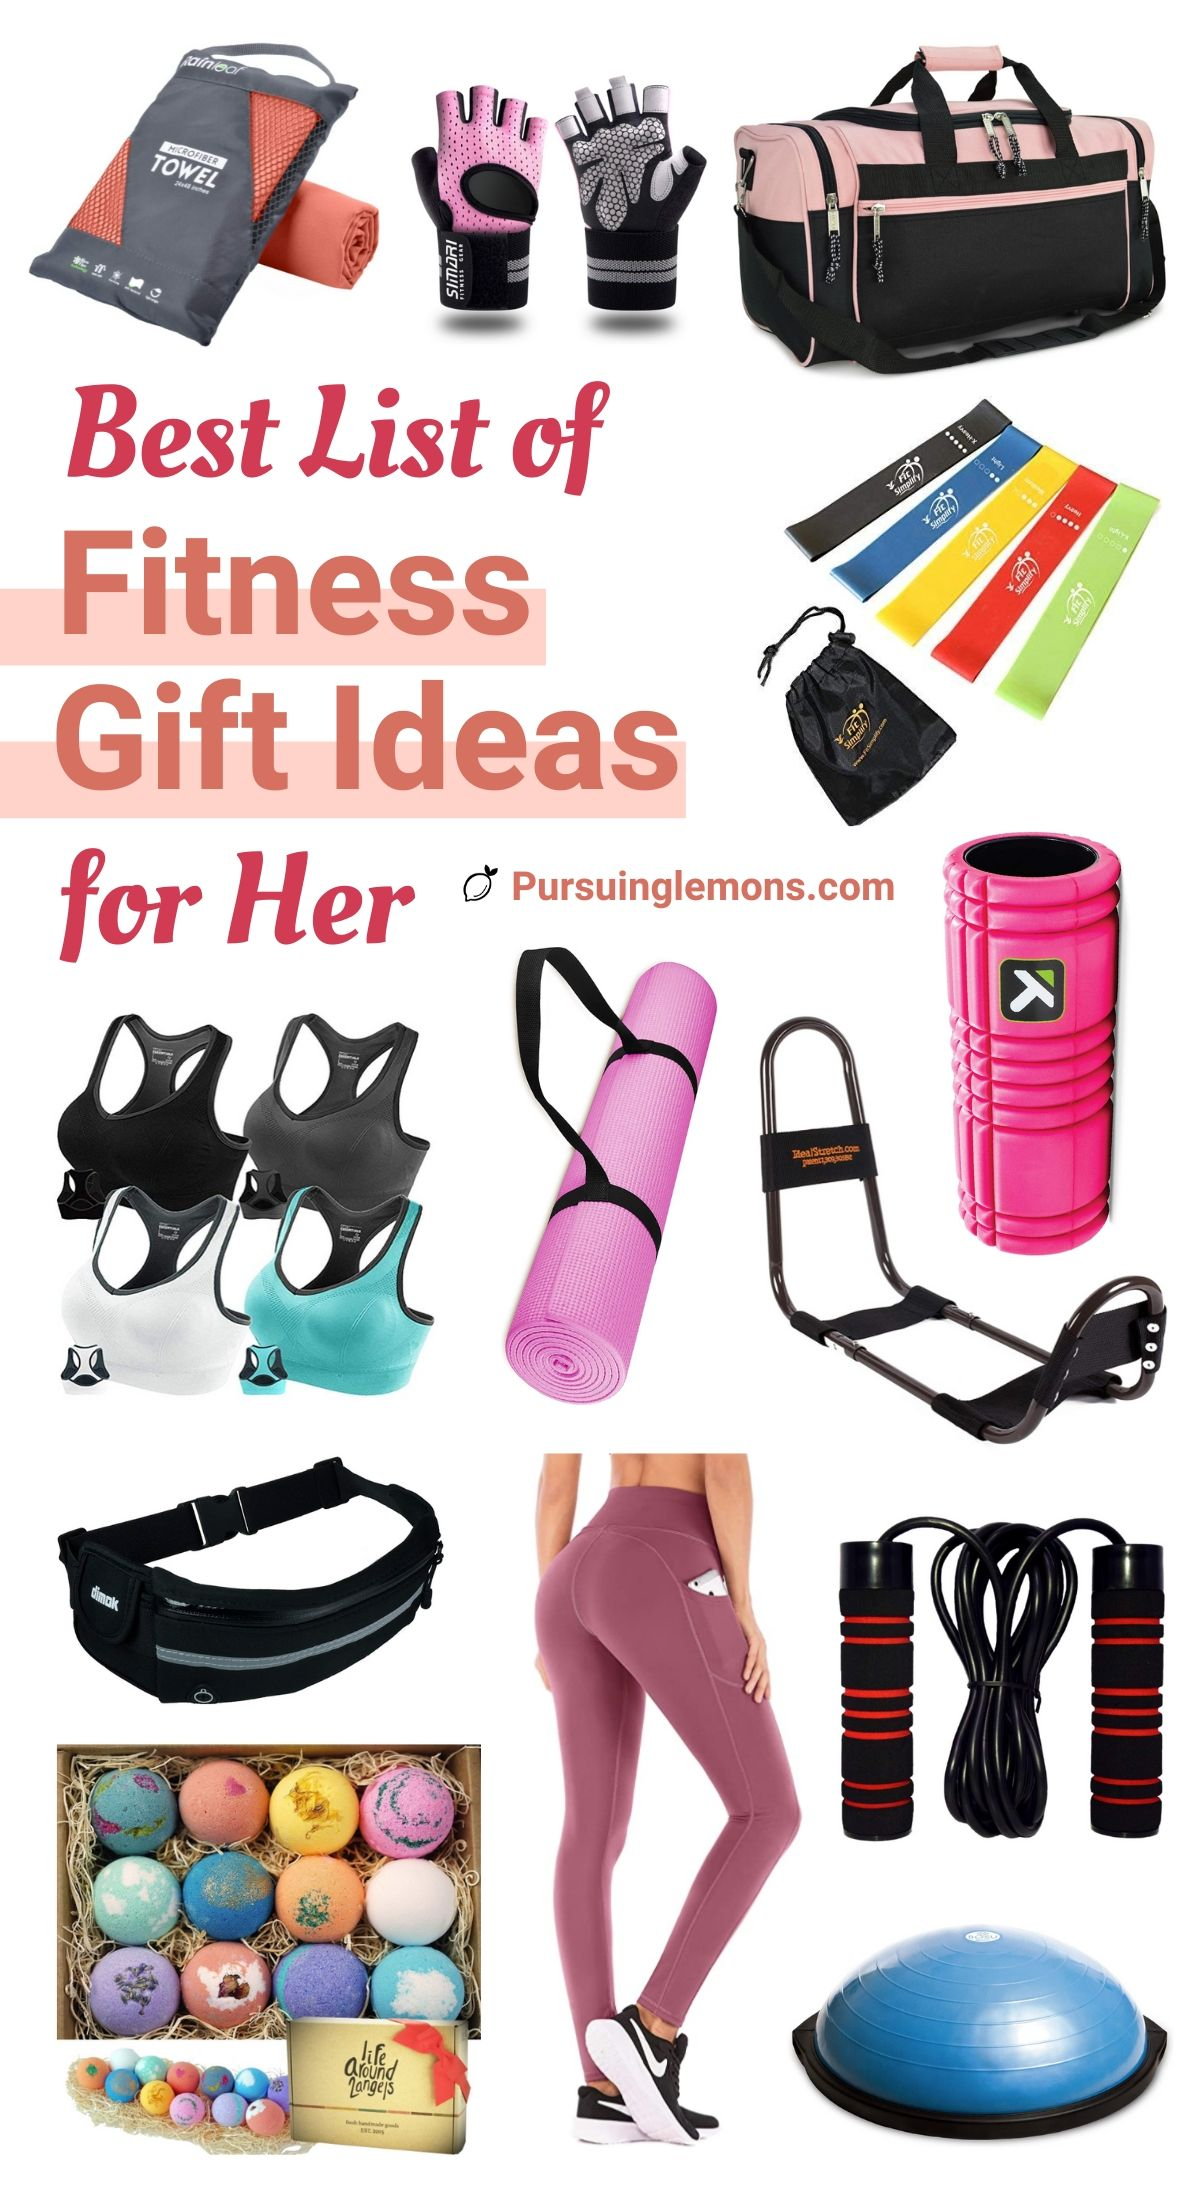 The Best List Of Fitness Gift Ideas For Her: health and fitness gifts, workout gifts for her, gym lover gifts, women fitness gifts, best fitness gifts, and workout presents.  If you're looking for the best fitness gift ideas for her, start with this list! #fitnessgift #giftguidefitness #fitnessgiftforher